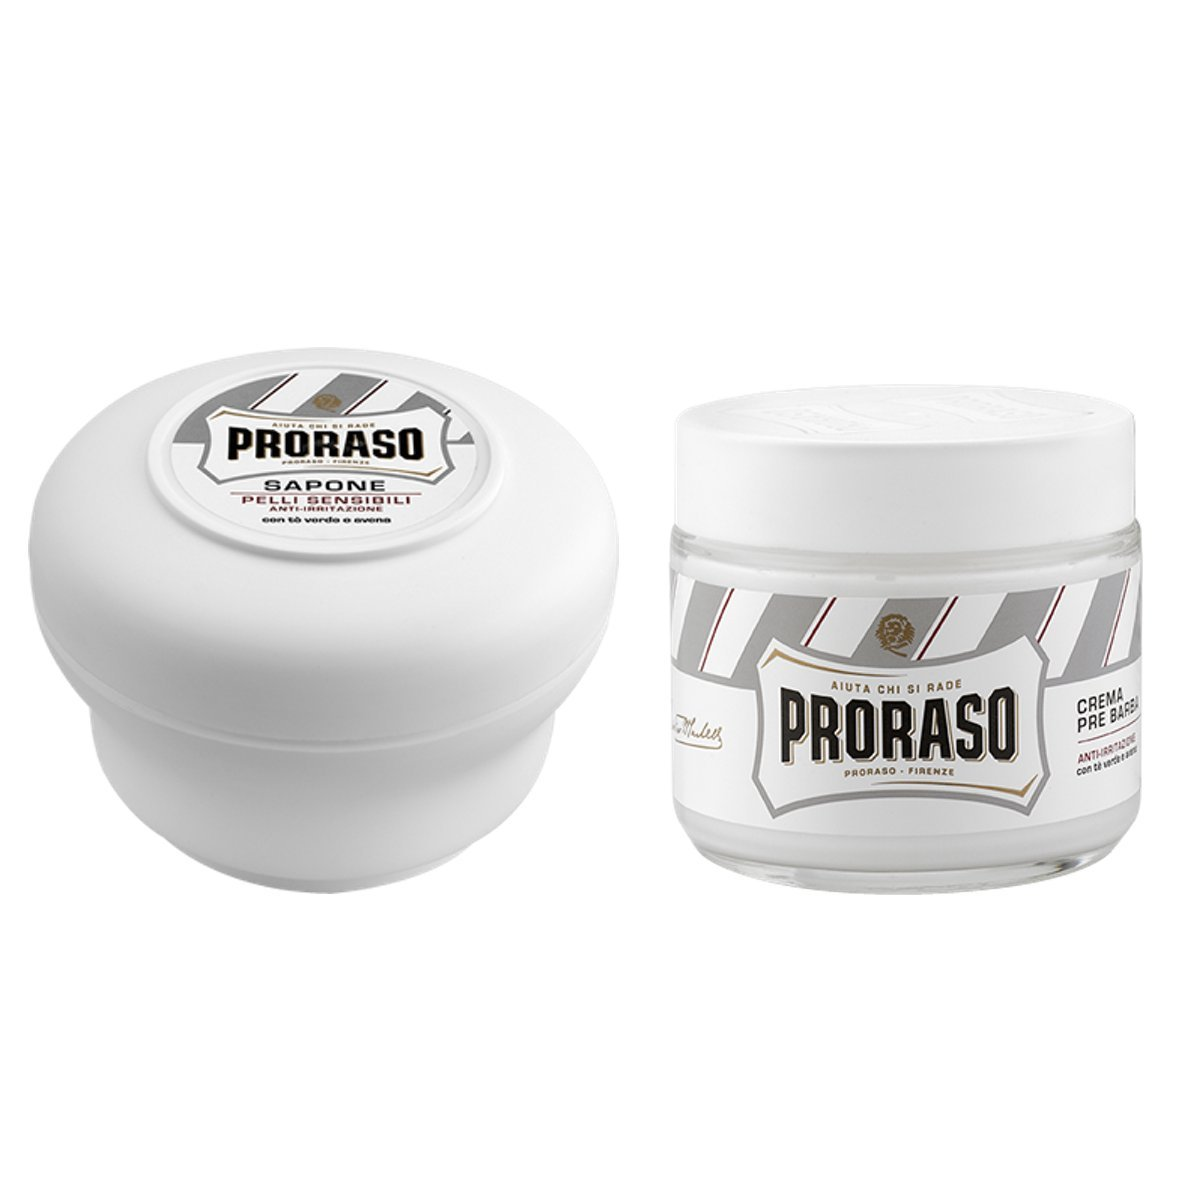 Proraso Shaving Soap and Pre Shave Twin Pack - White Sensitive Green Tea and Oatmeal